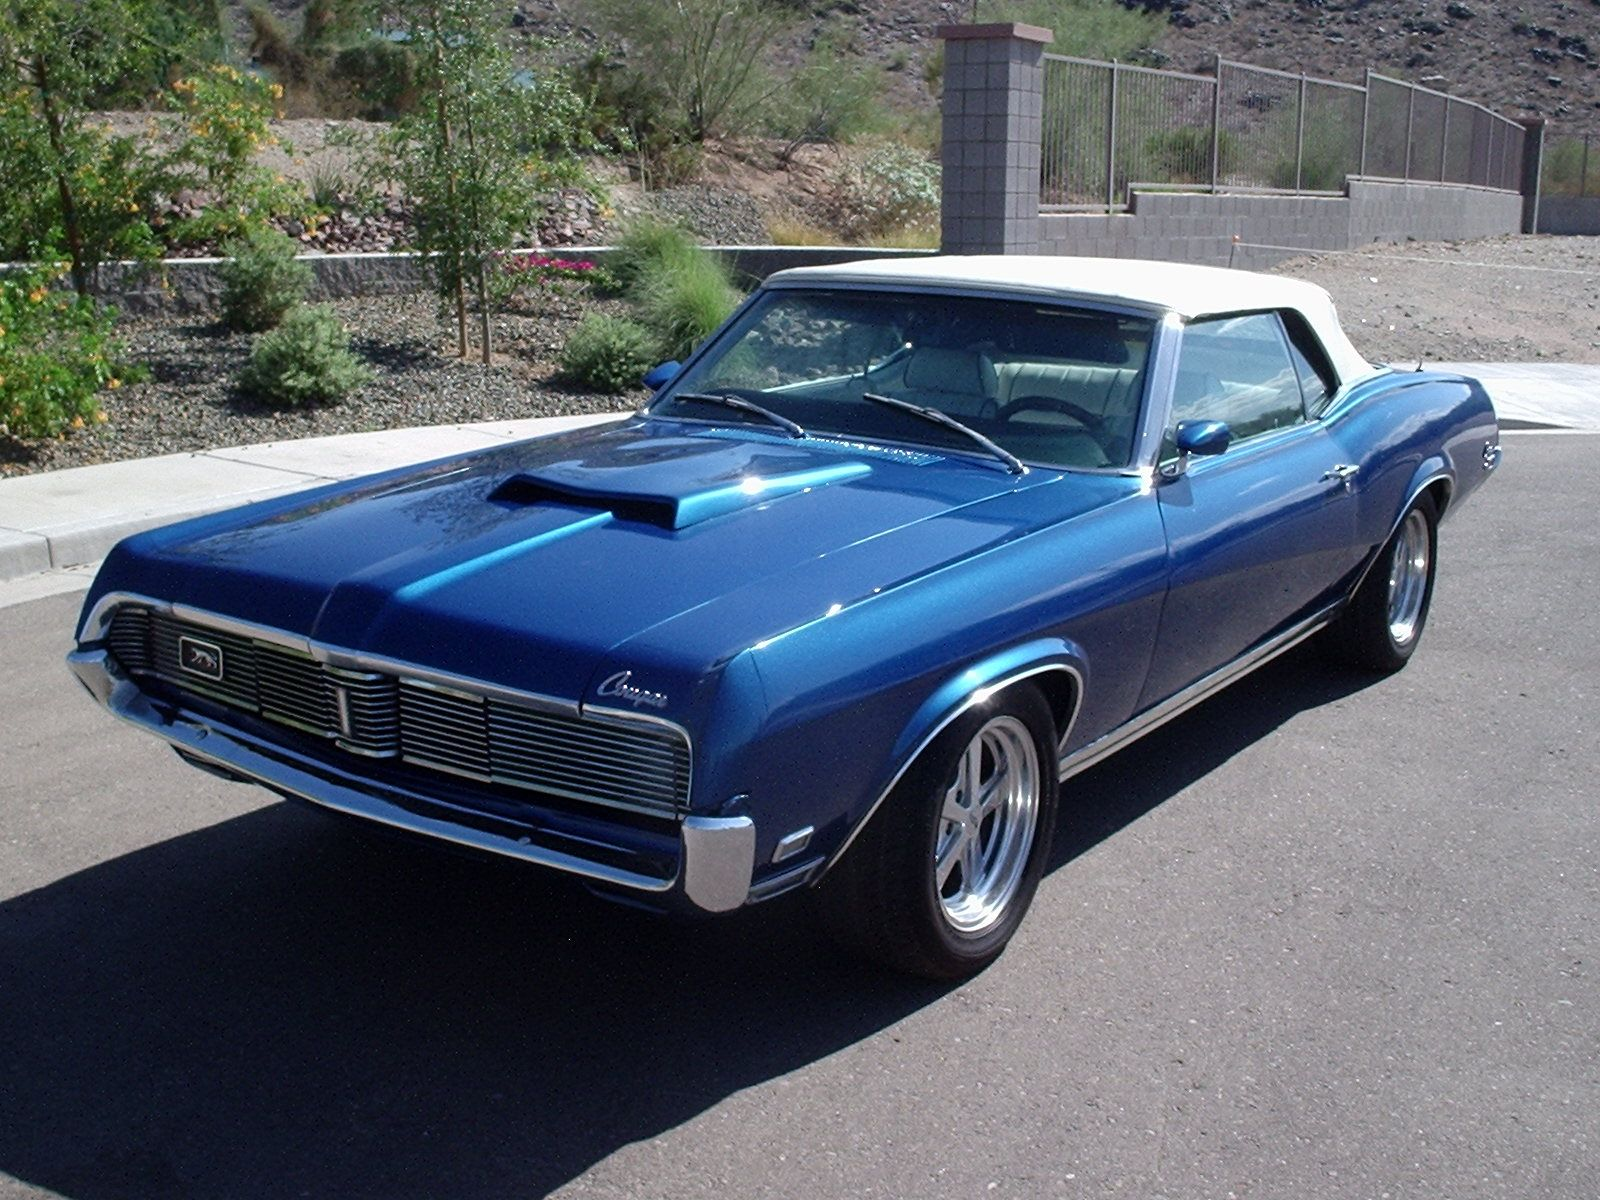 1969 Mercury Cougar XR 7 convertible   Mercury Cougar 1967 70     1969 Mercury Cougar XR 7 convertible